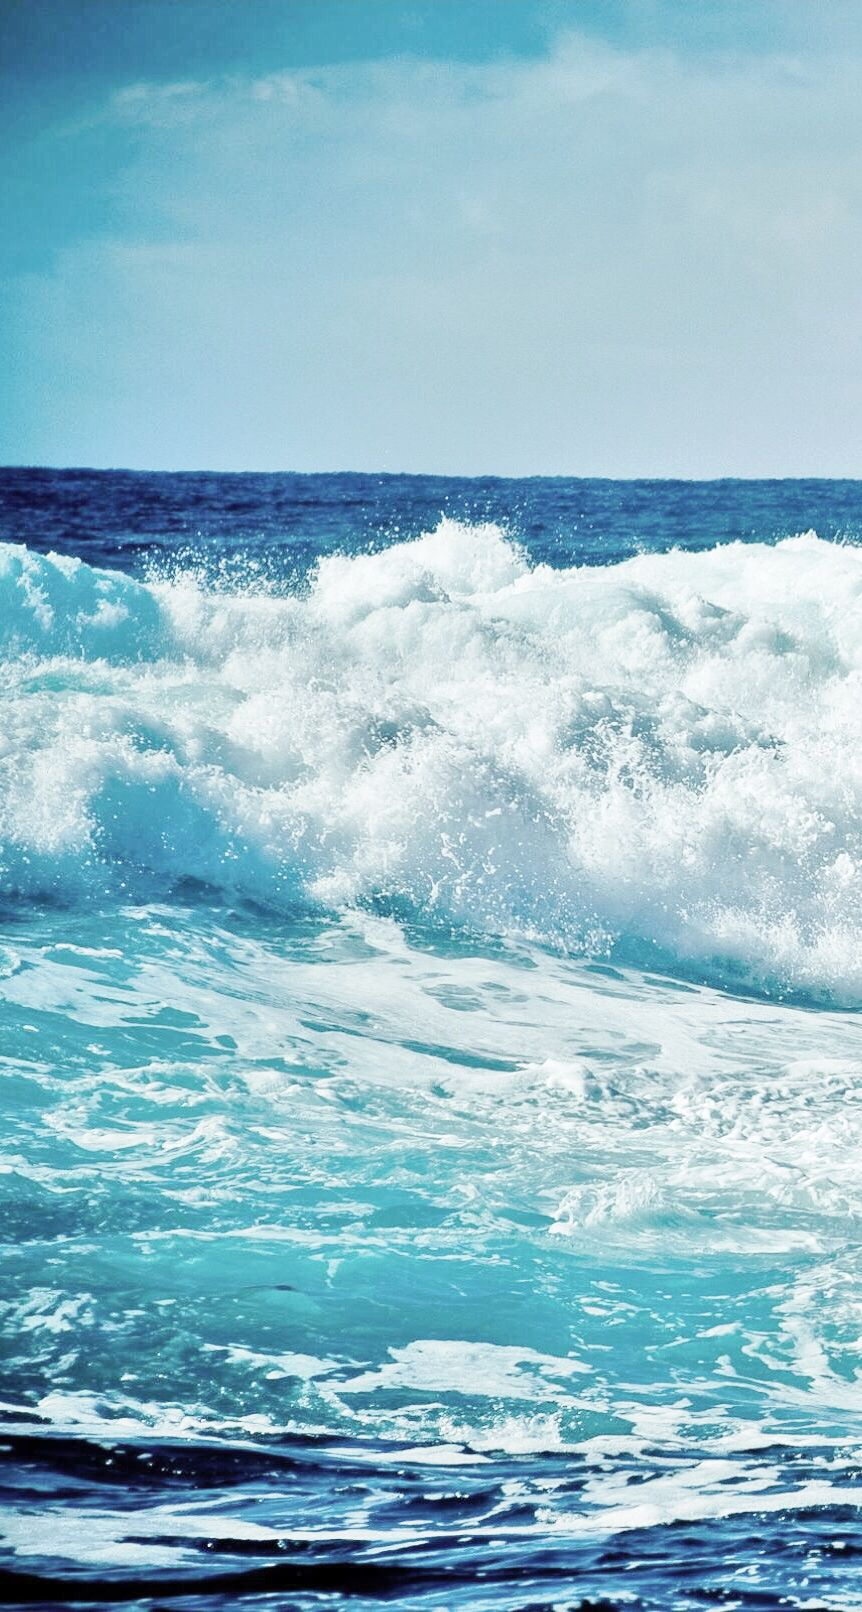 Ocean waves iphone wallpaper Waves, Ocean scenes, Ocean